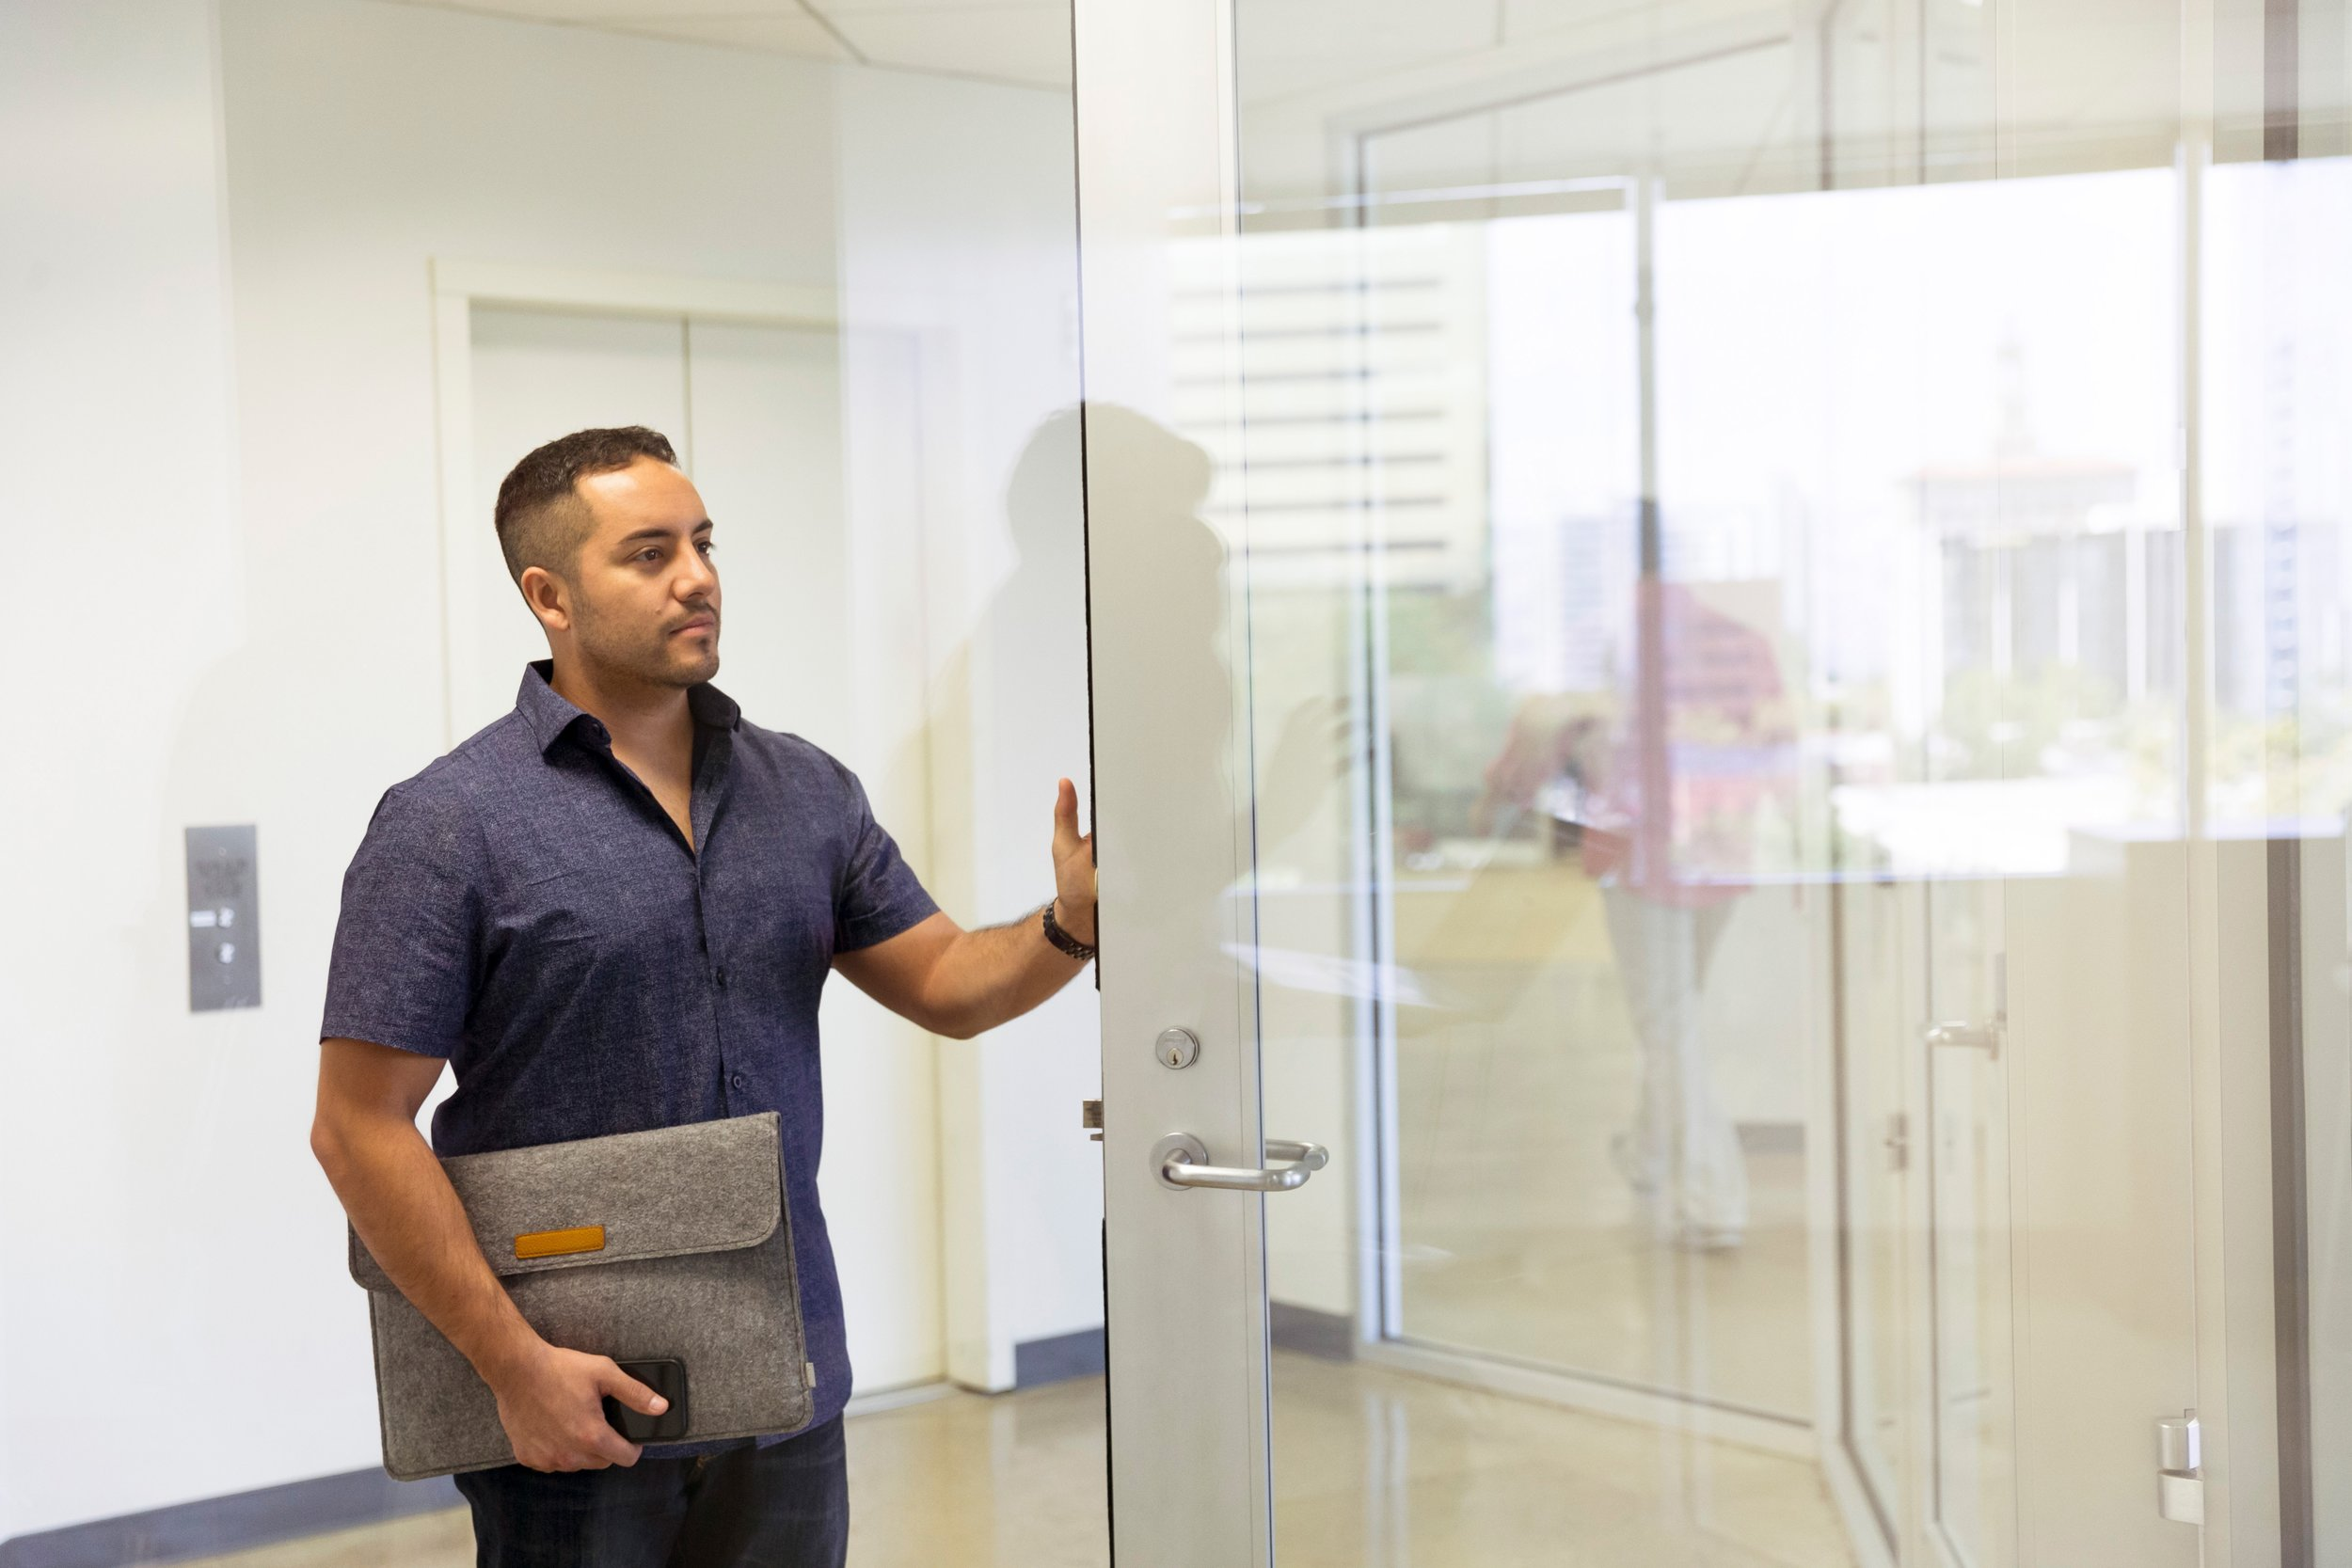 We can schedule an in-office visit consultation to inspect the property before scheduling the job so we can give your business the most accurate quote upfront.